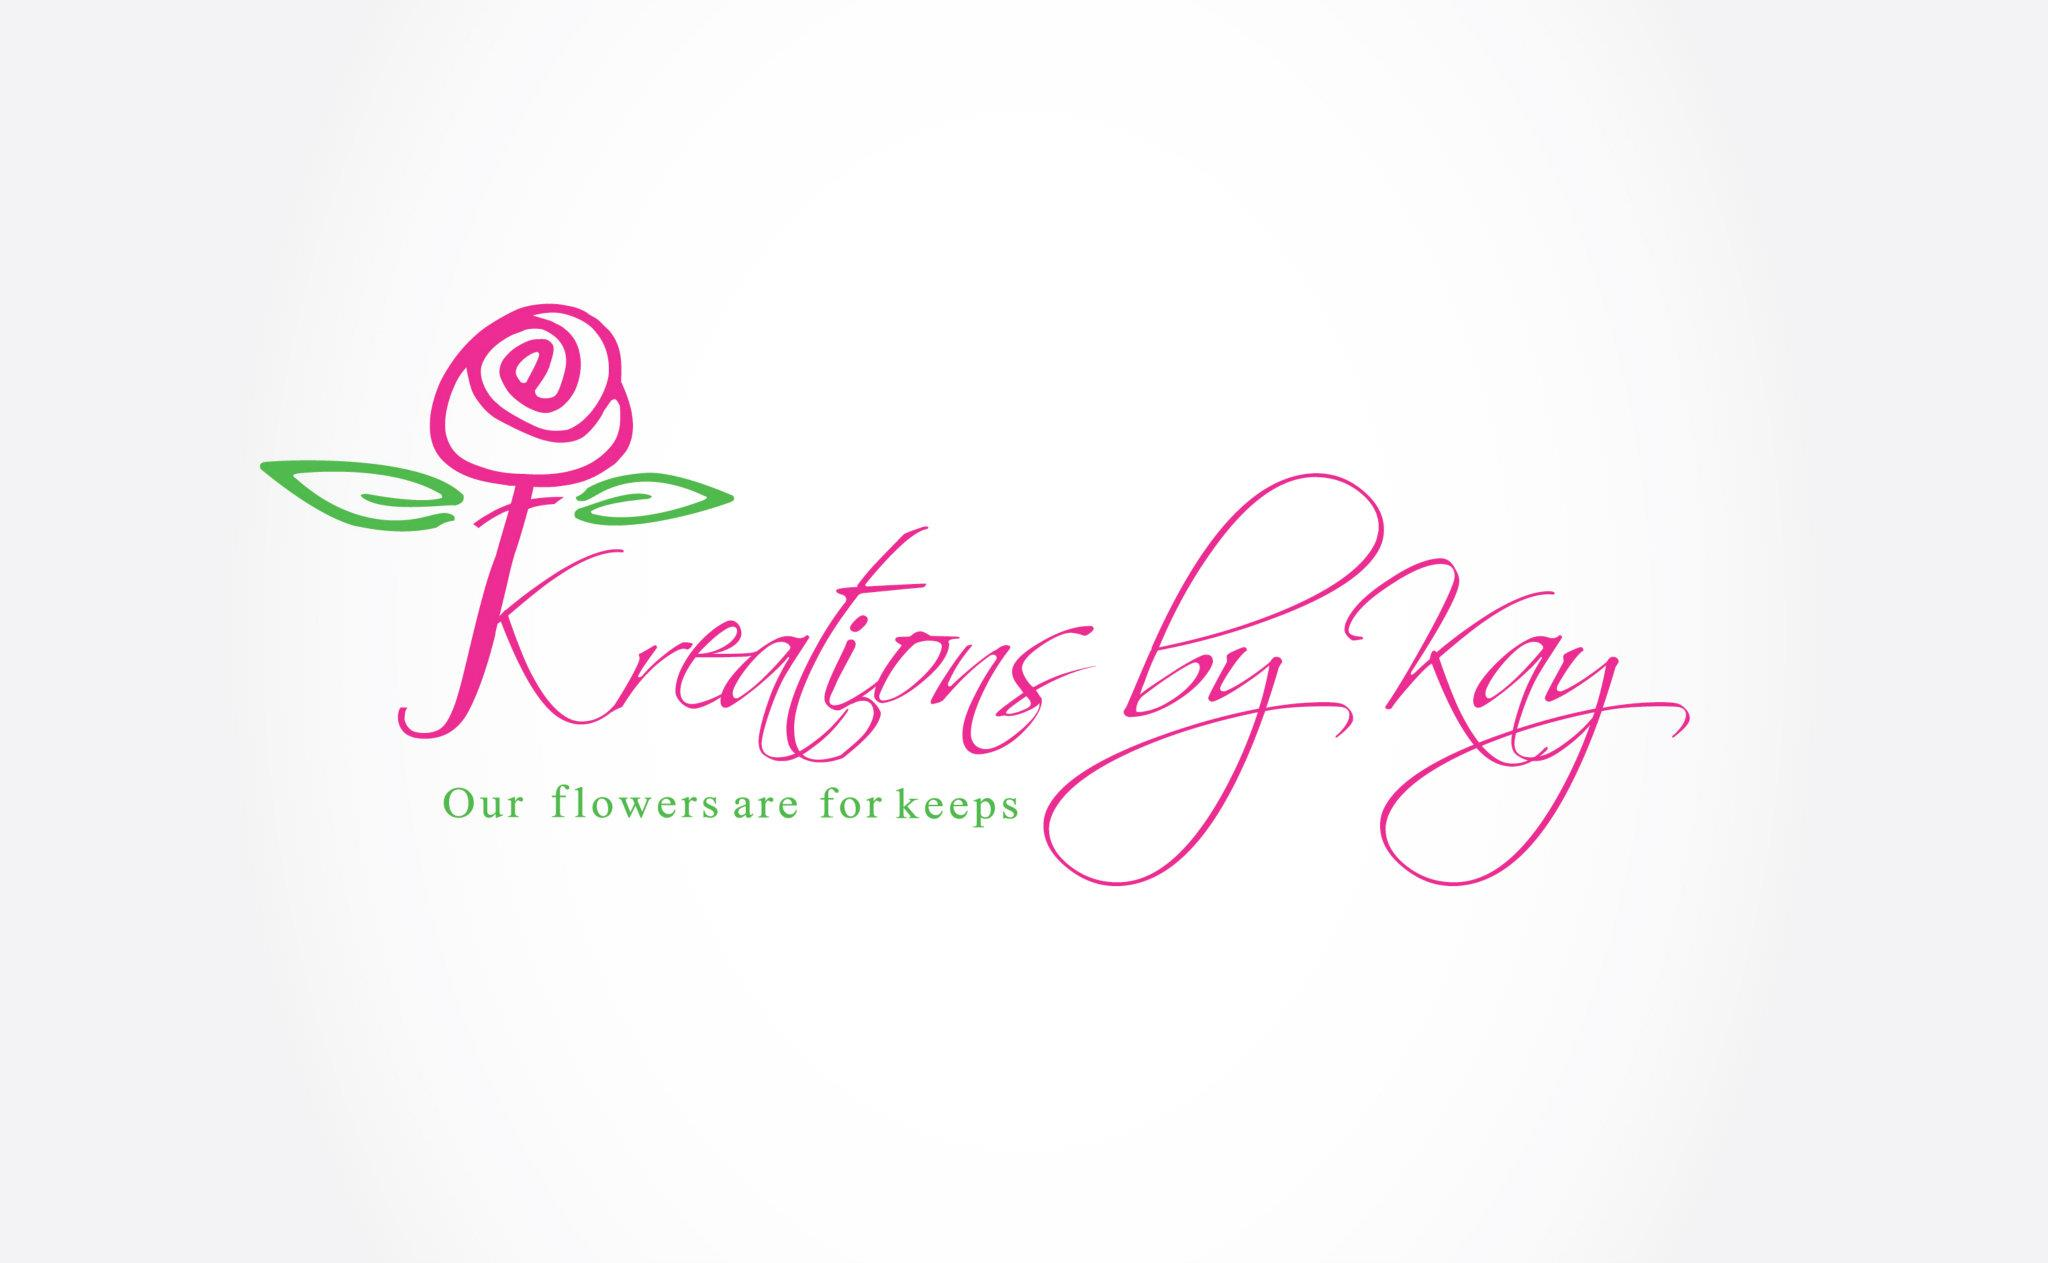 Branding logo design kreations by kay foi designs Branding and logo design companies